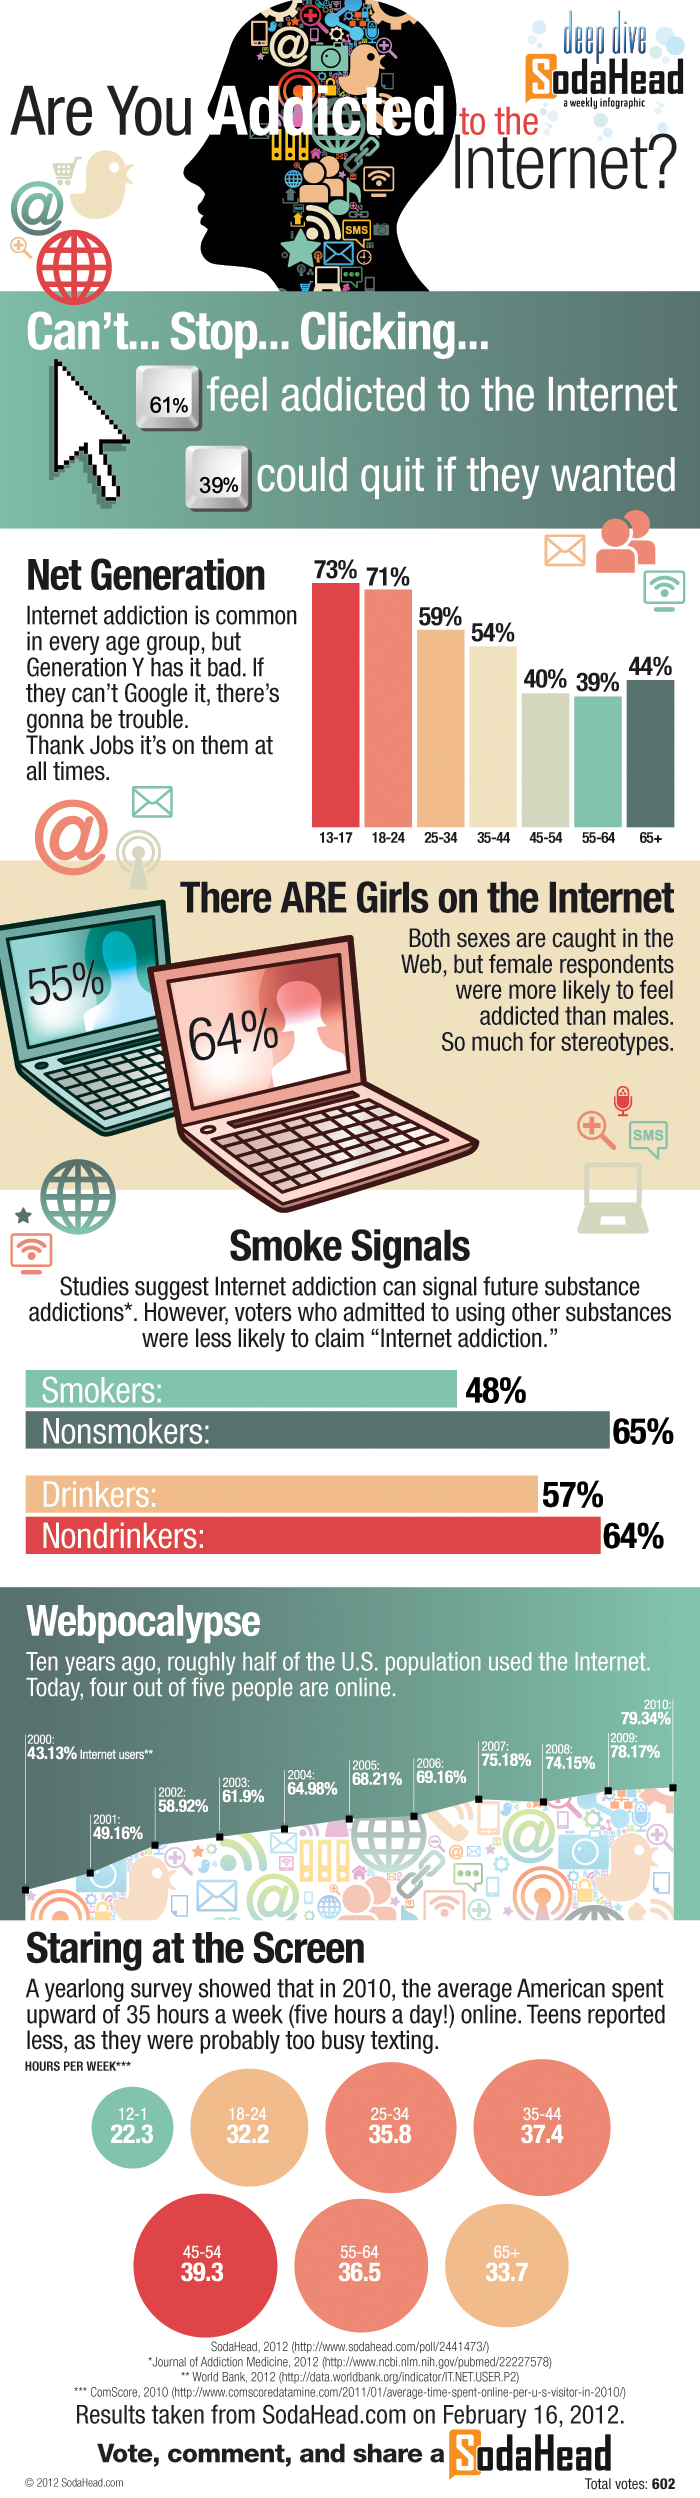 Internet Addiction Trends